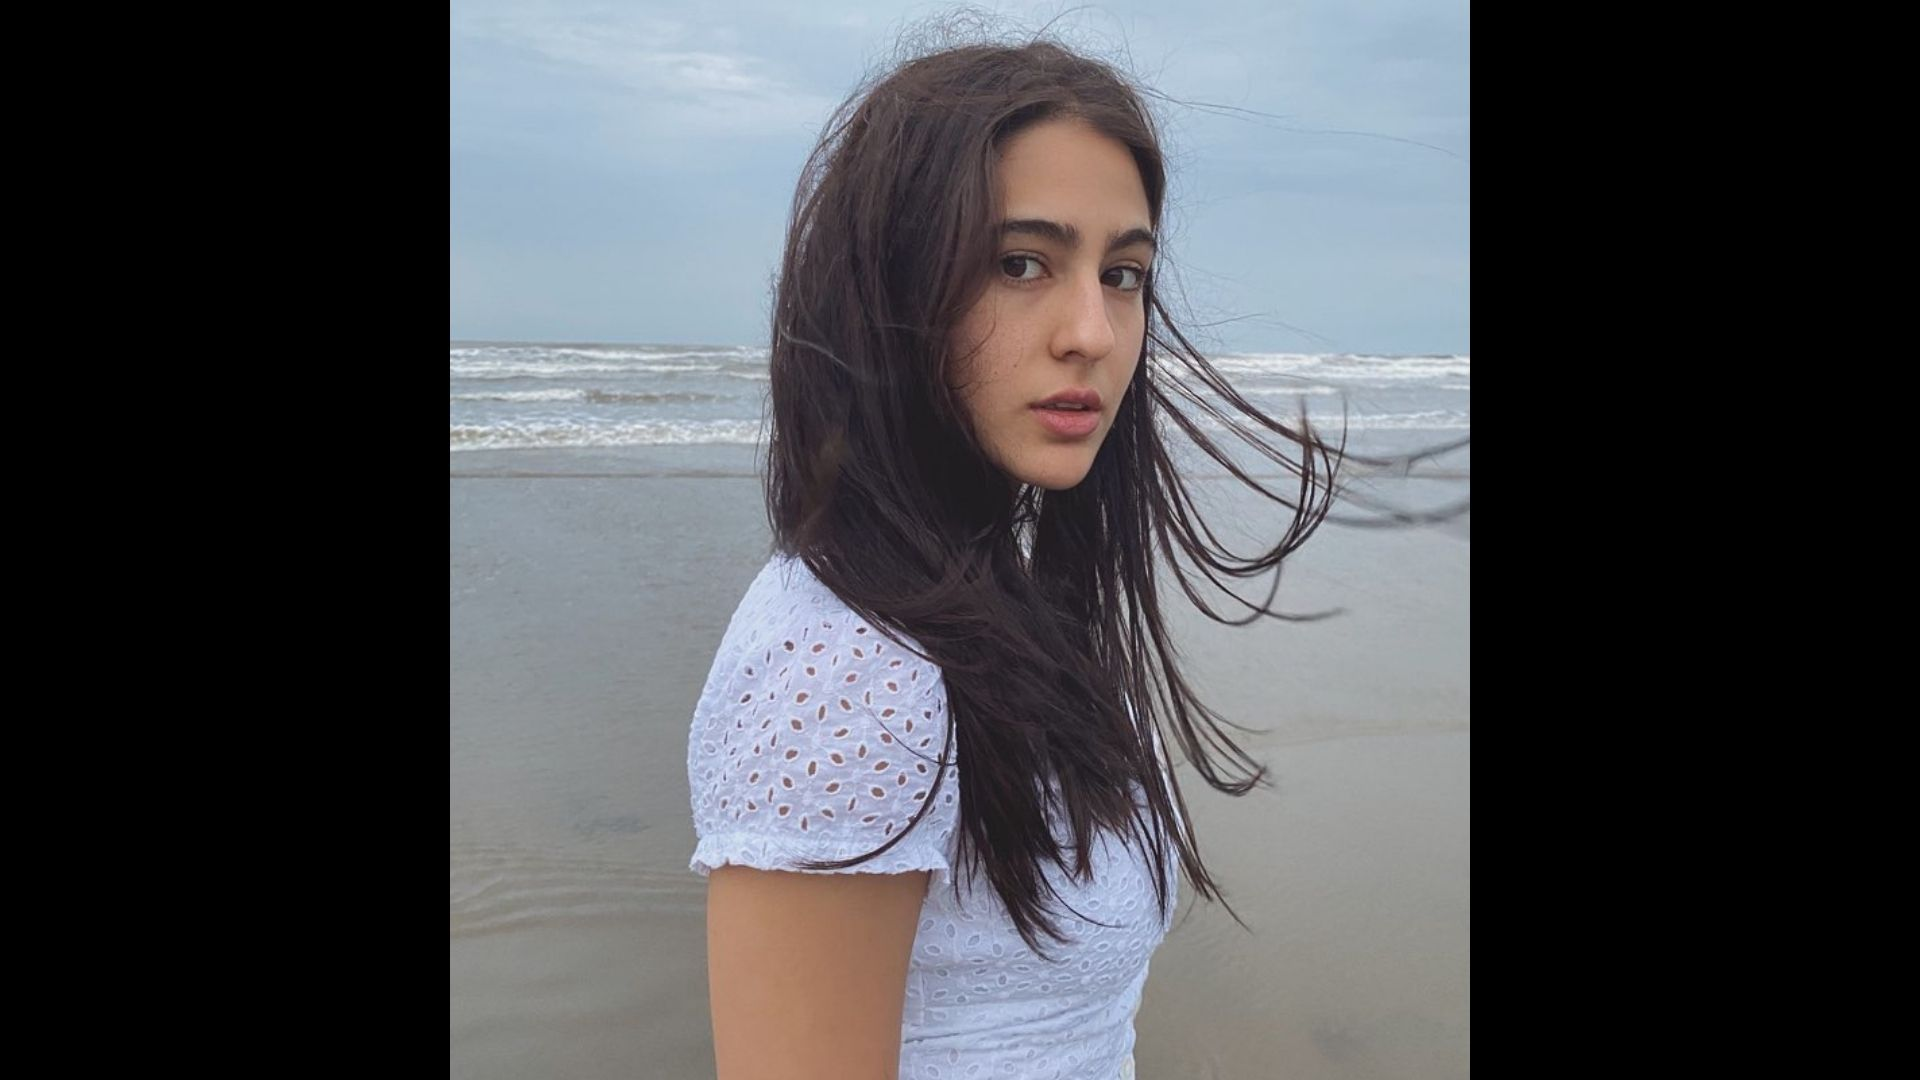 Sara Ali Khan Gets Snapped In An All White Gym Attire; Flashes A Million-Dollar Smile And Sends Fans In A Tizzy – SEE PICS